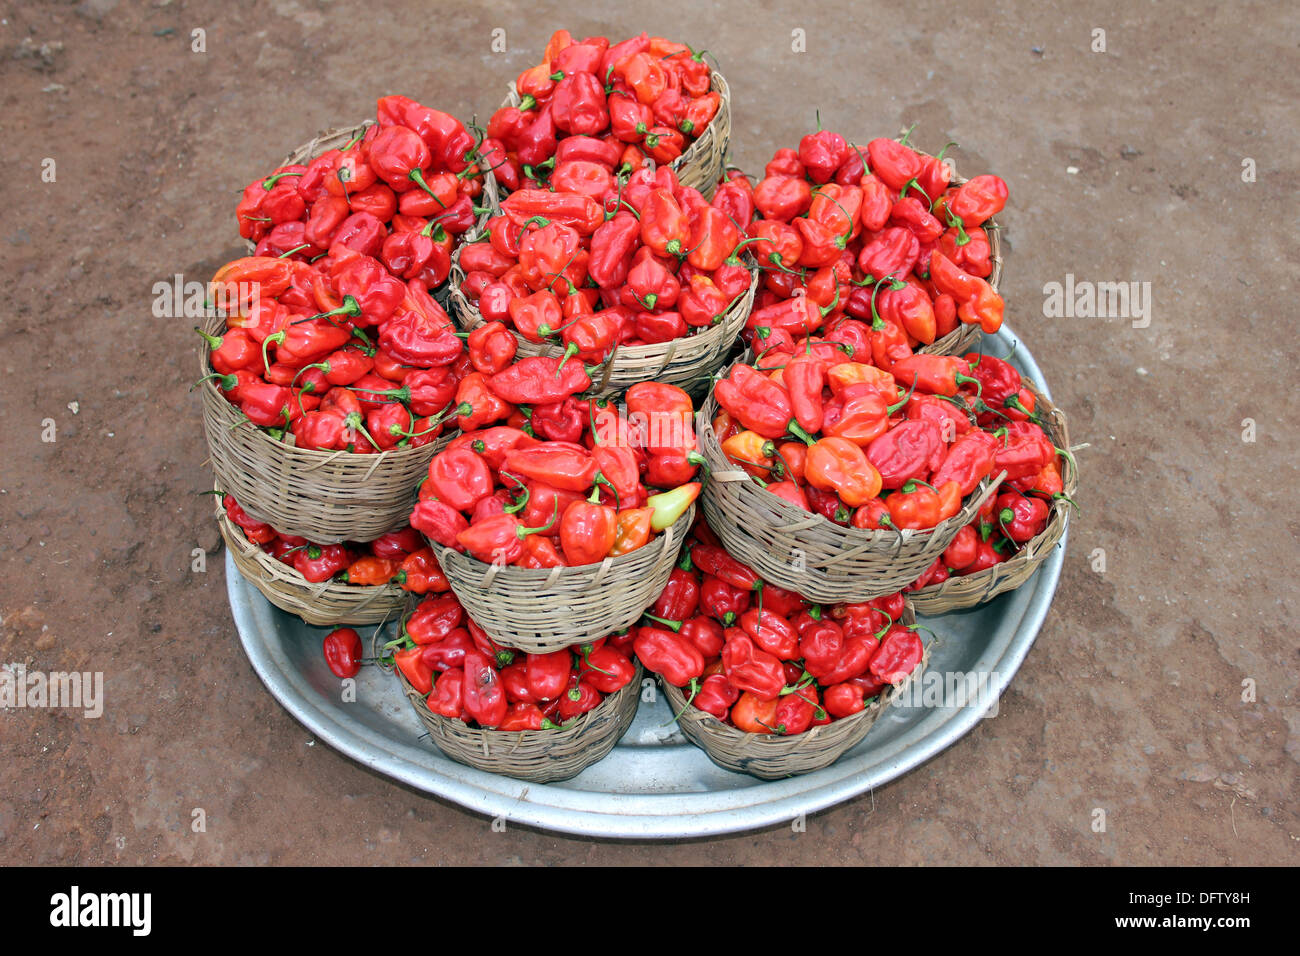 Piles Of Fresh Bell Chili Peppers For Sale at A Ghanaian Market Typically Used For The Local Red-red Peppery Dish - Stock Image